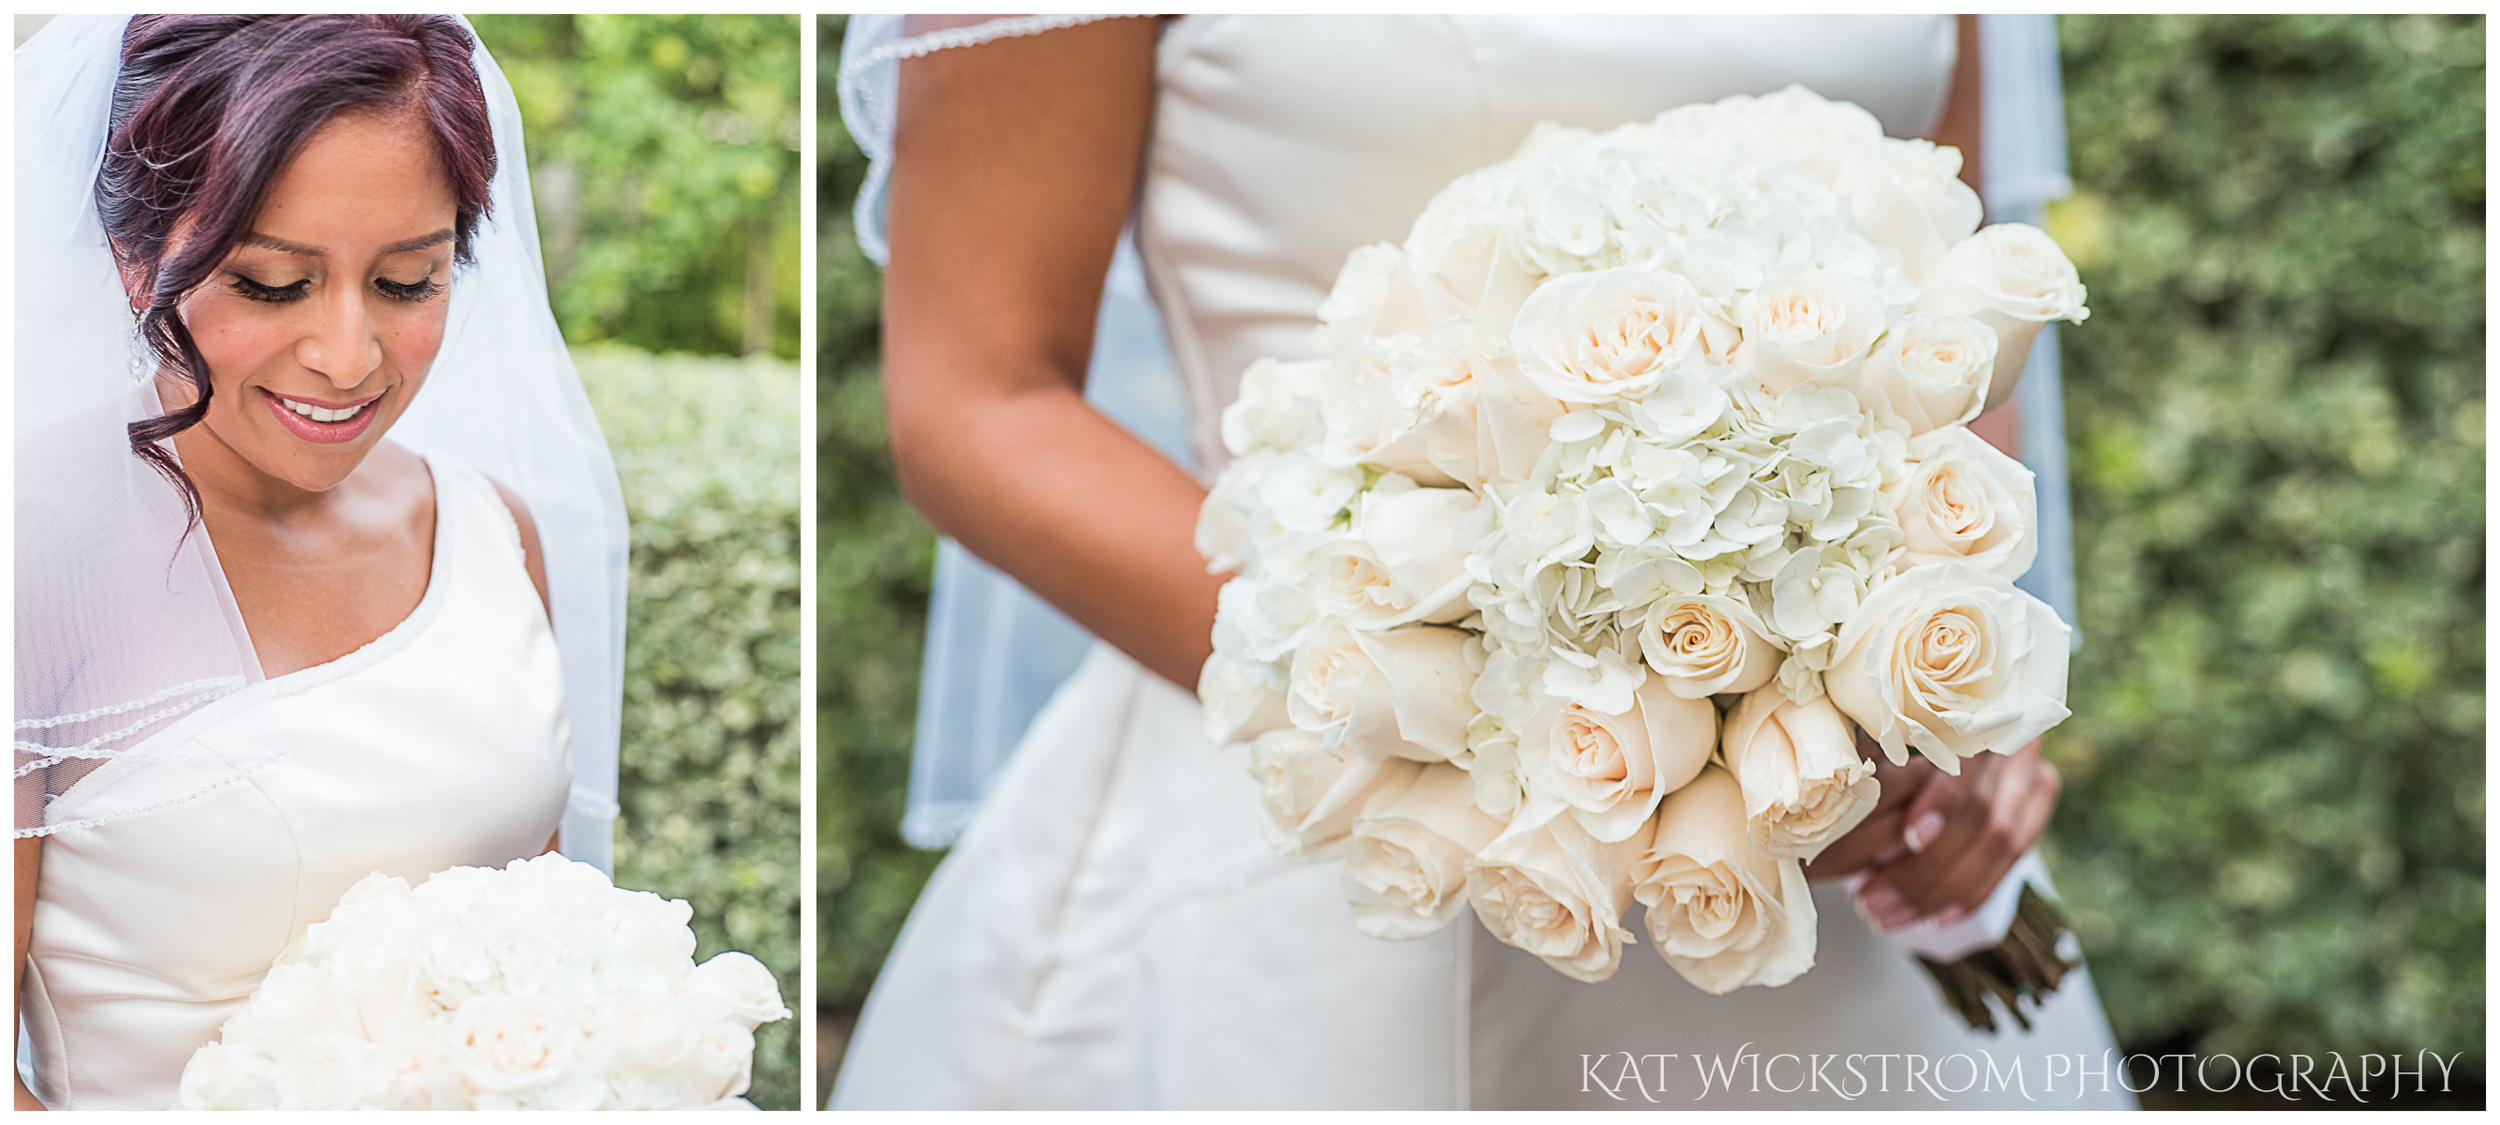 The bride was absolutely gorgeous and her bouquet was simple yet elegant.